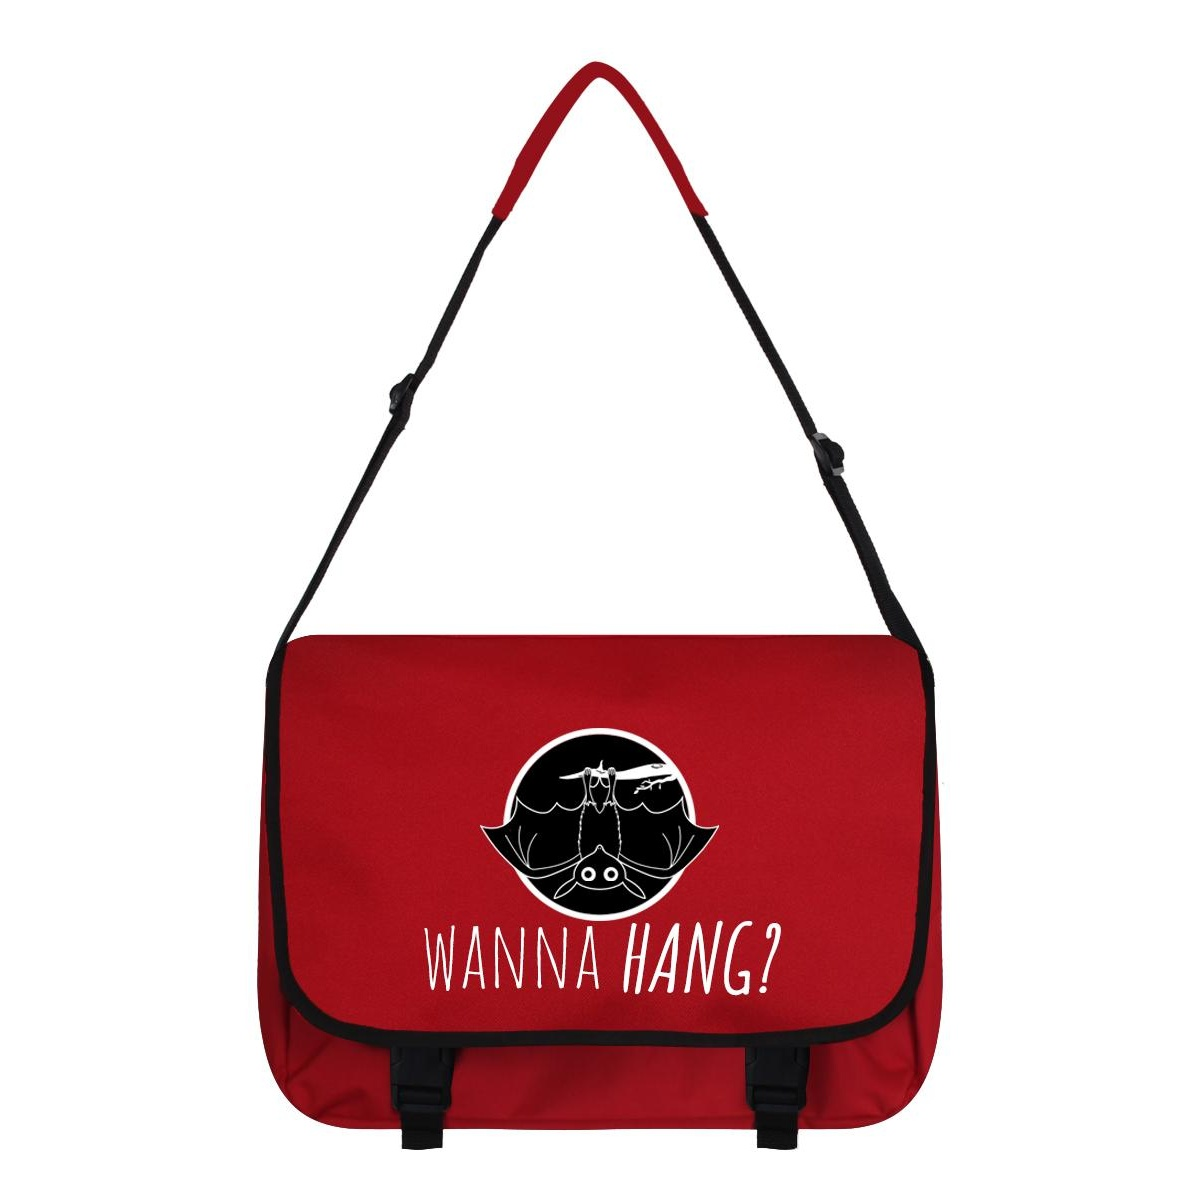 Grindstore Wanna Hang Messenger Bag (One Size) (Red/Black)